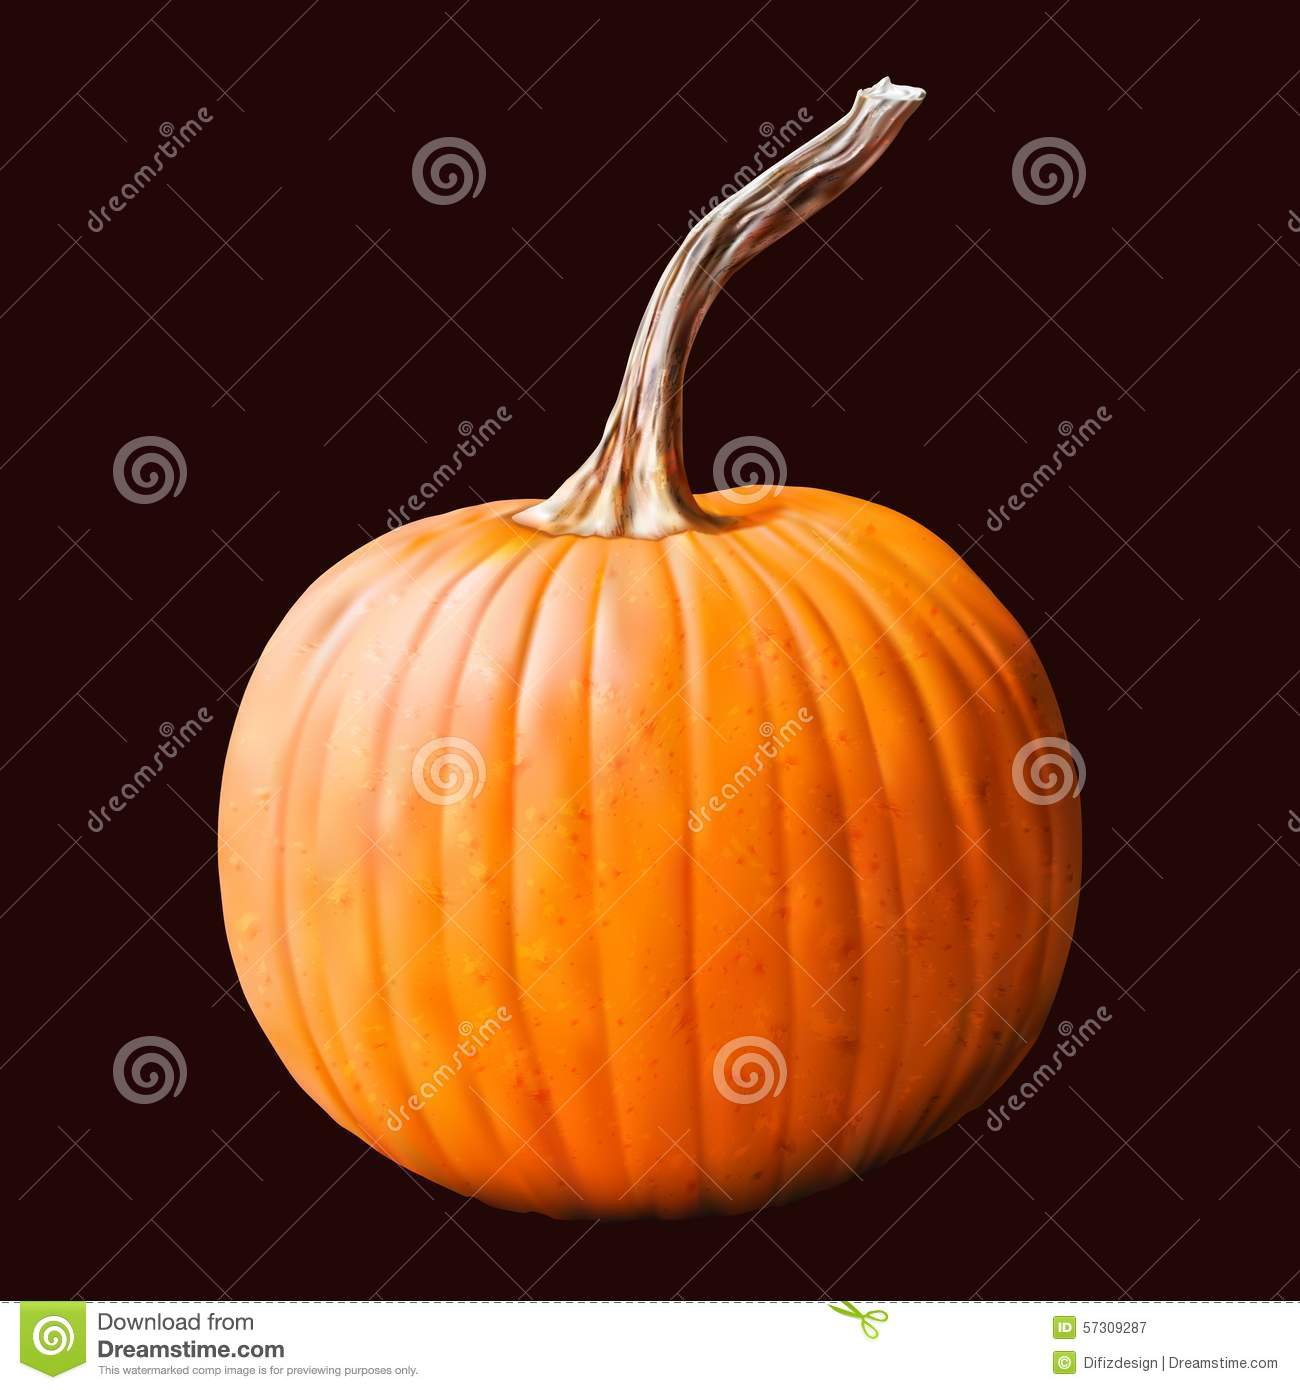 is a pumpkin a fruit or a vegetable fruit and water